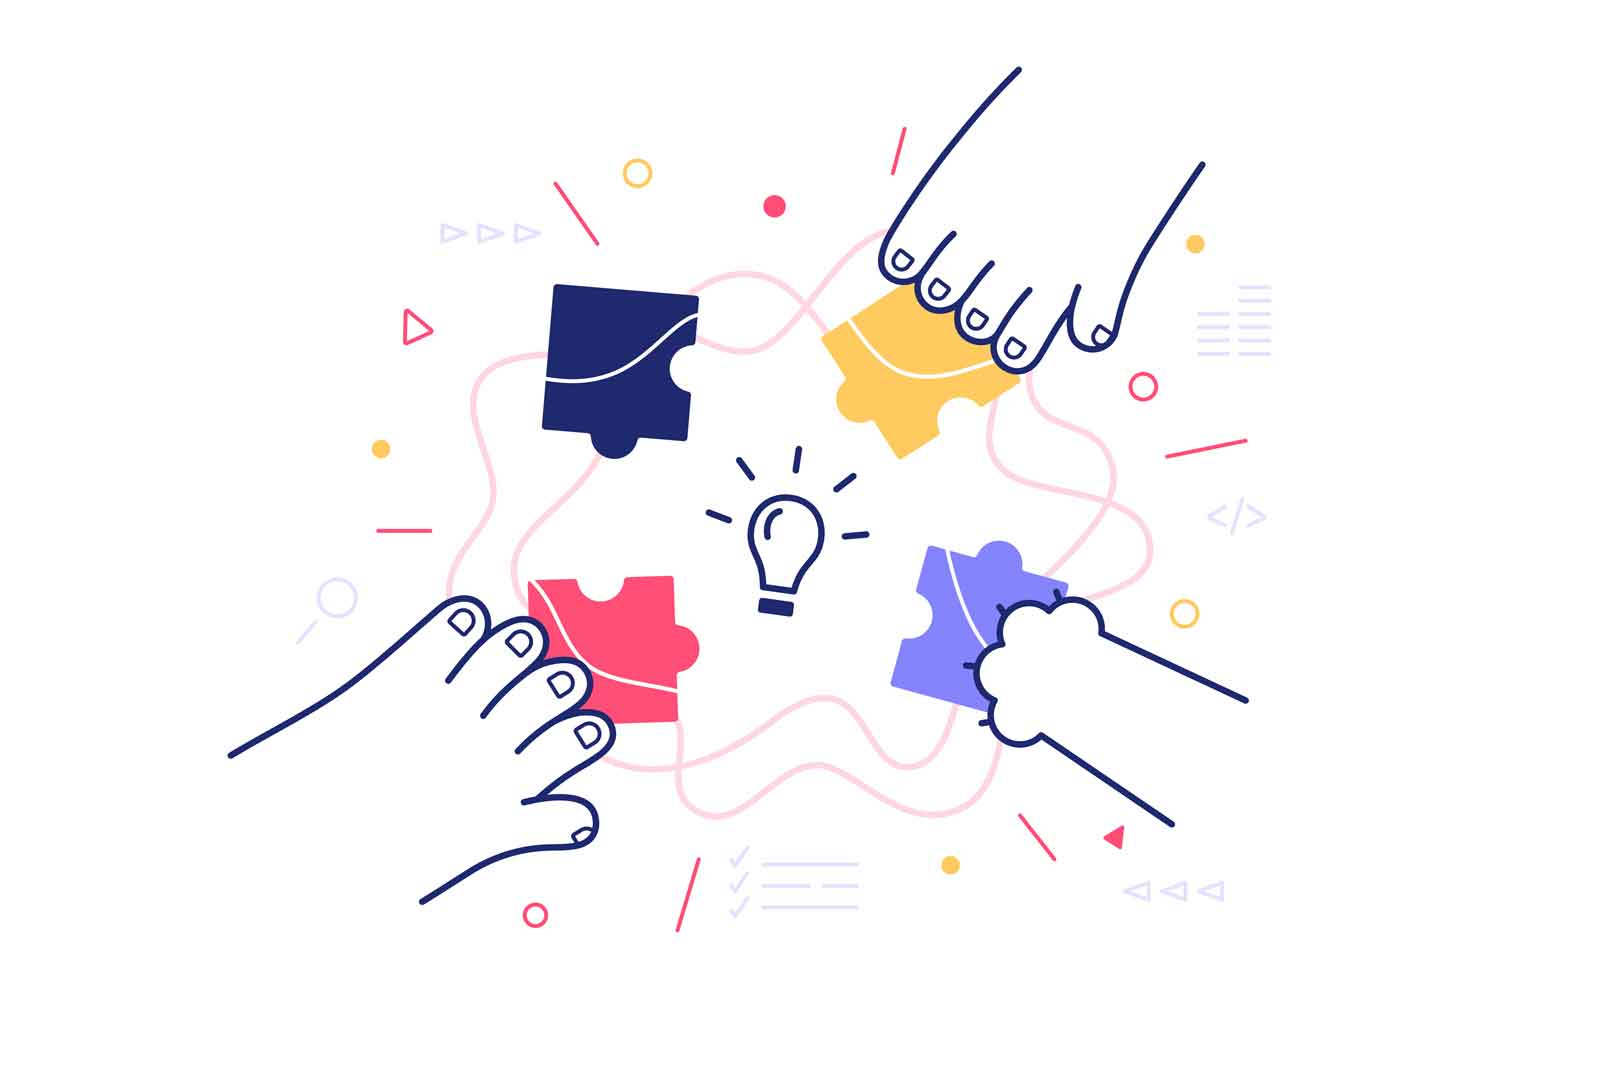 Group work on project vector illustration. Hands putting colourful puzzles together flat style. Teamwork and smart idea concept. Isolated on white background